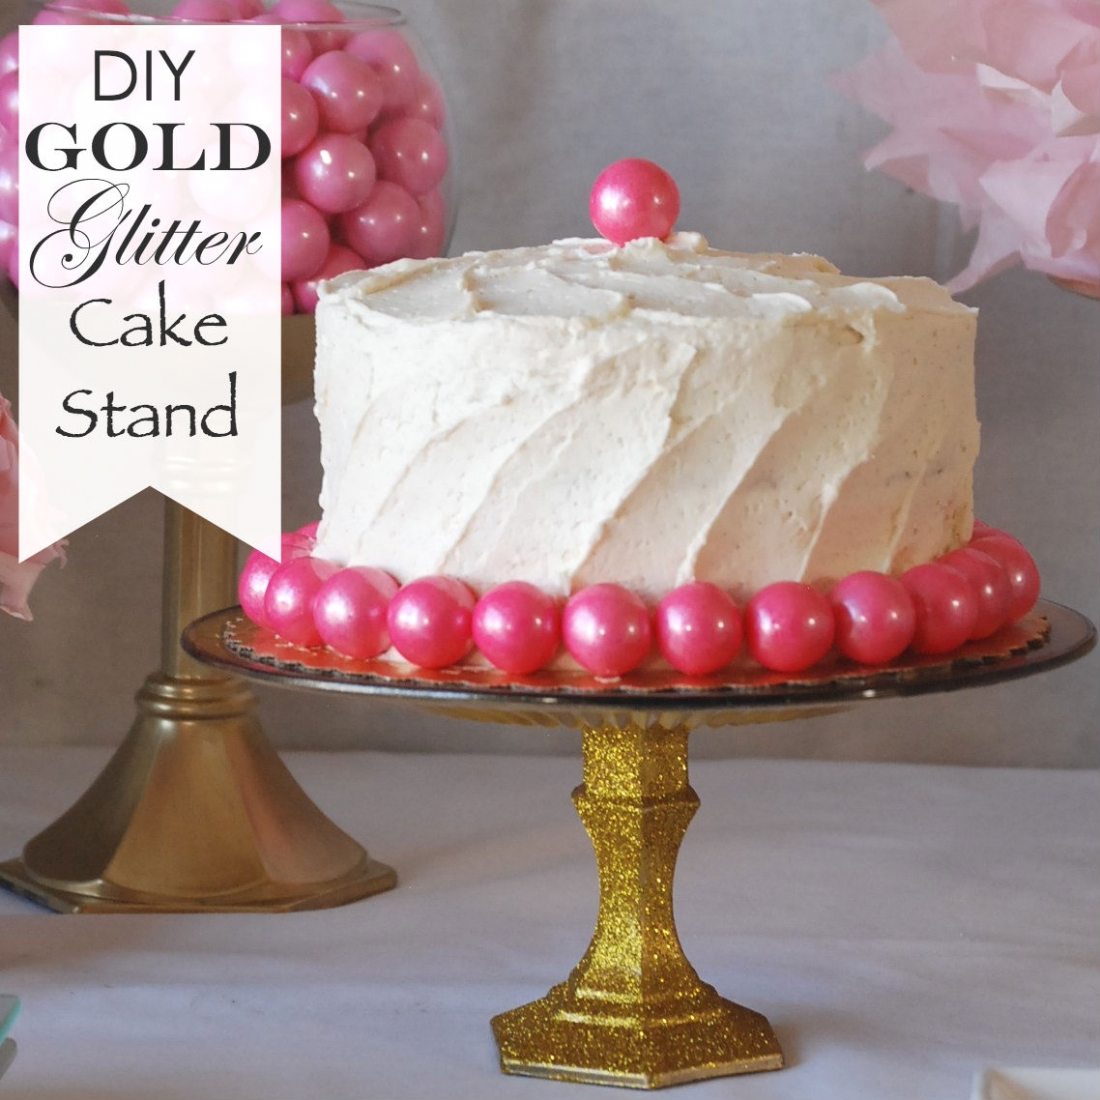 Transform a Dollar Store glass plate and candlestick into a beautiful gold glitter cake stand! & DIY Gold Glitter Cake Stand | Endlessly Inspired